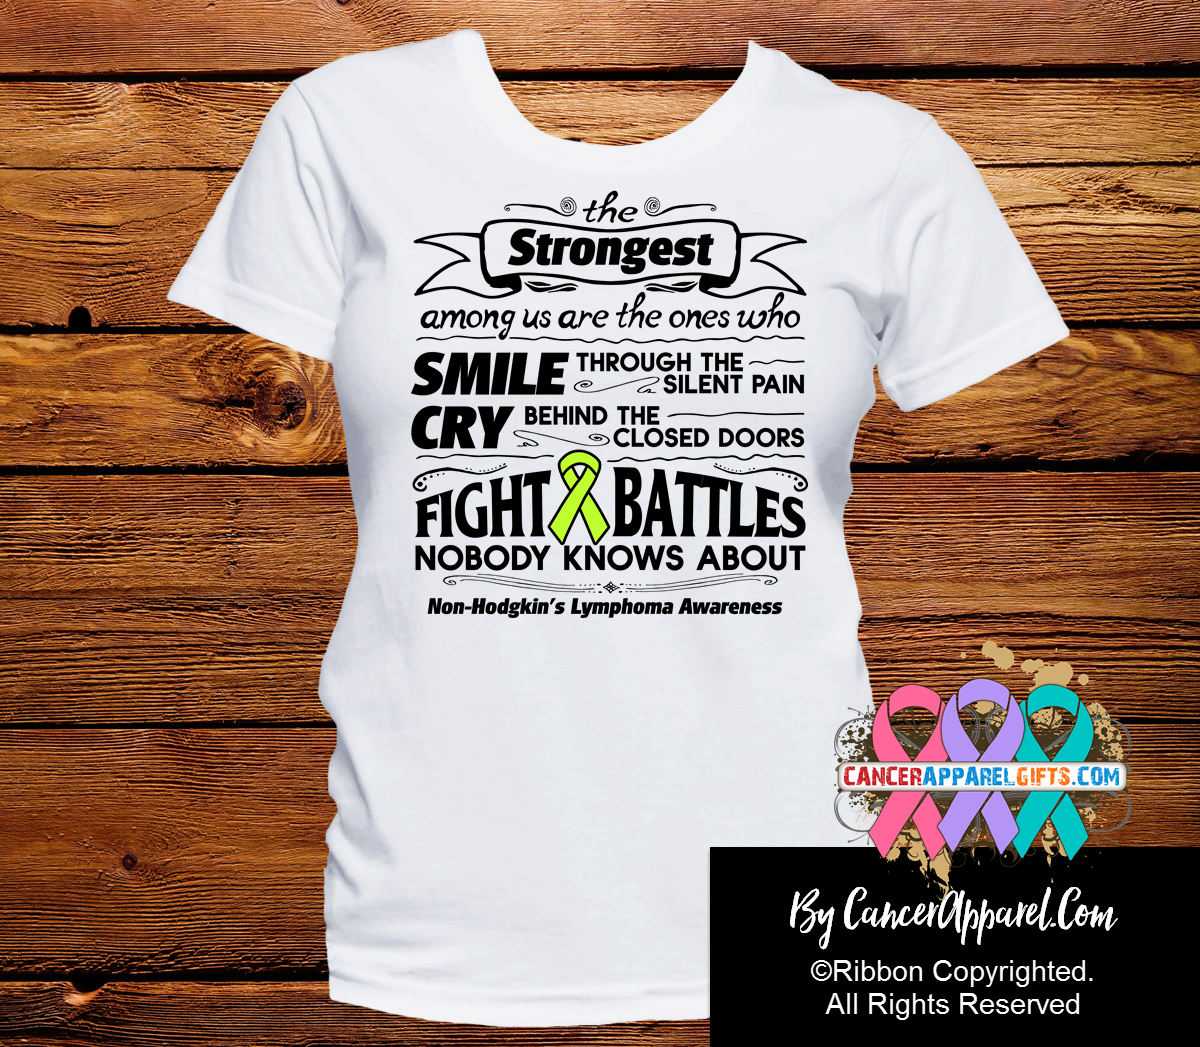 Non-Hodgkins Lymphoma The Strongest Among Us Shirts - Cancer Apparel and Gifts